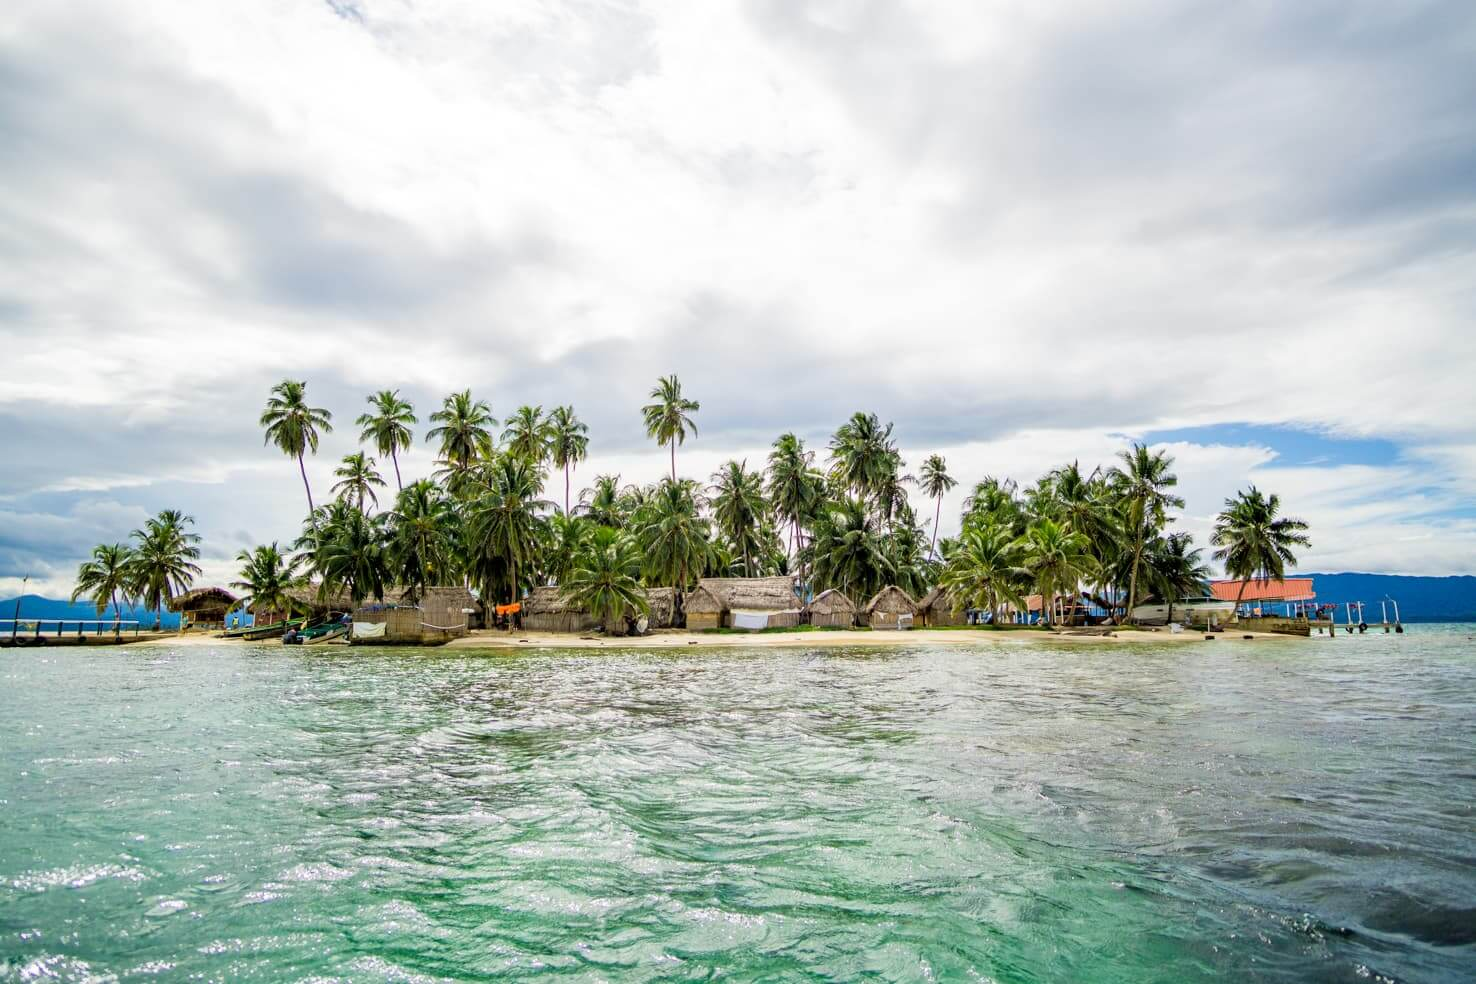 19 smart tips for planning your next trip - San Blas Islands, Panama